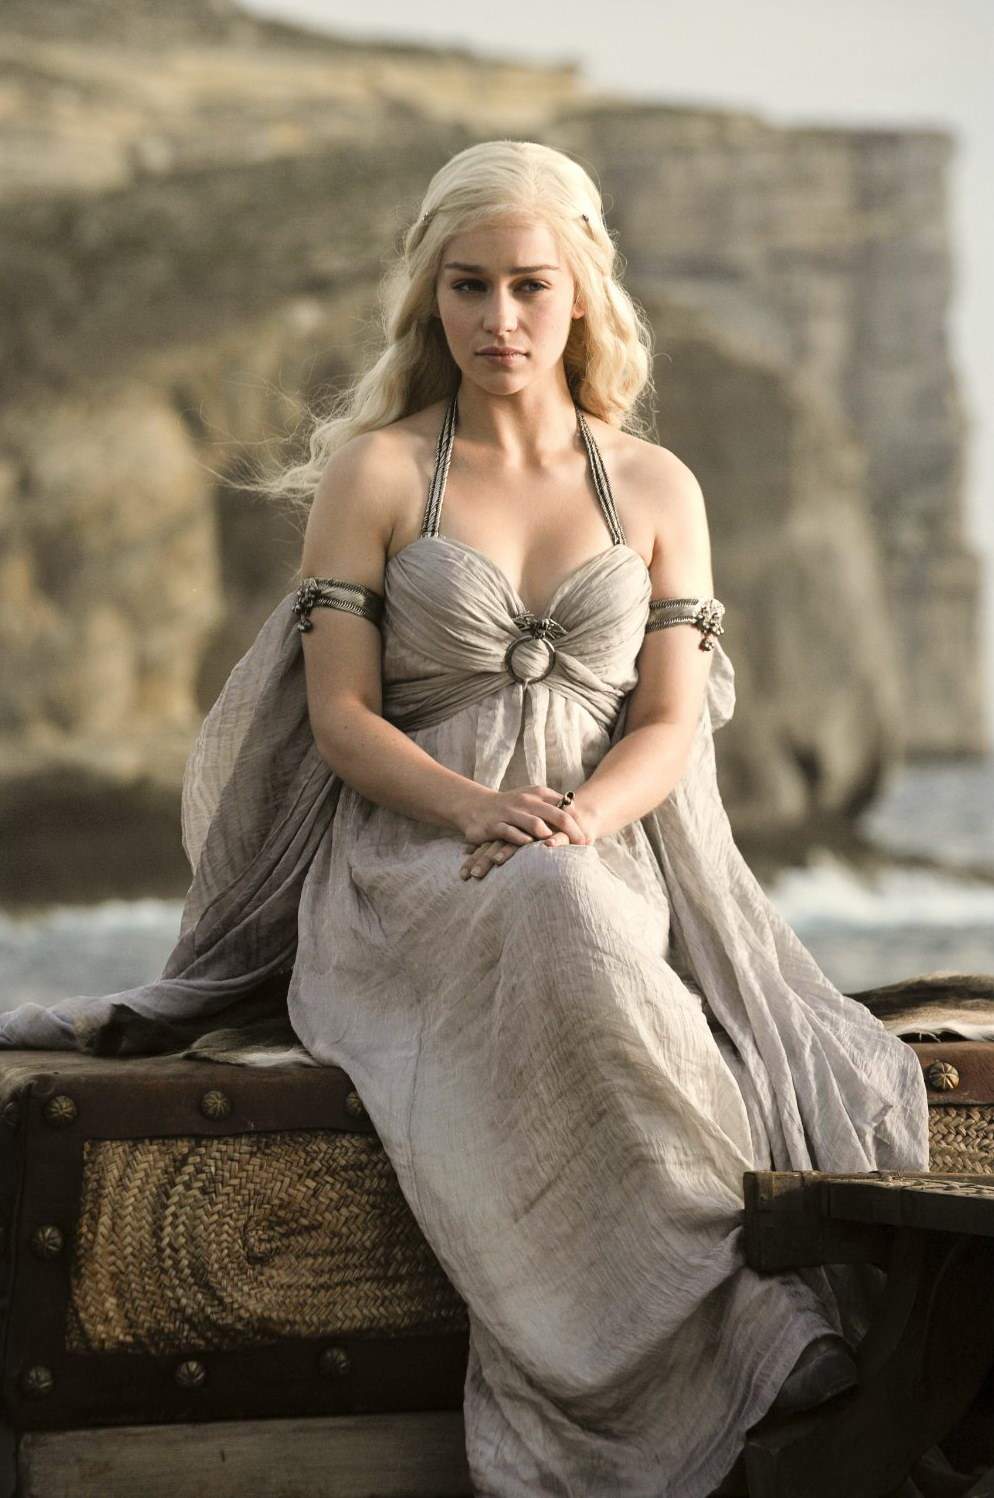 We Love Actress Emilia Clarke As Daenerys Targaryen In The Television